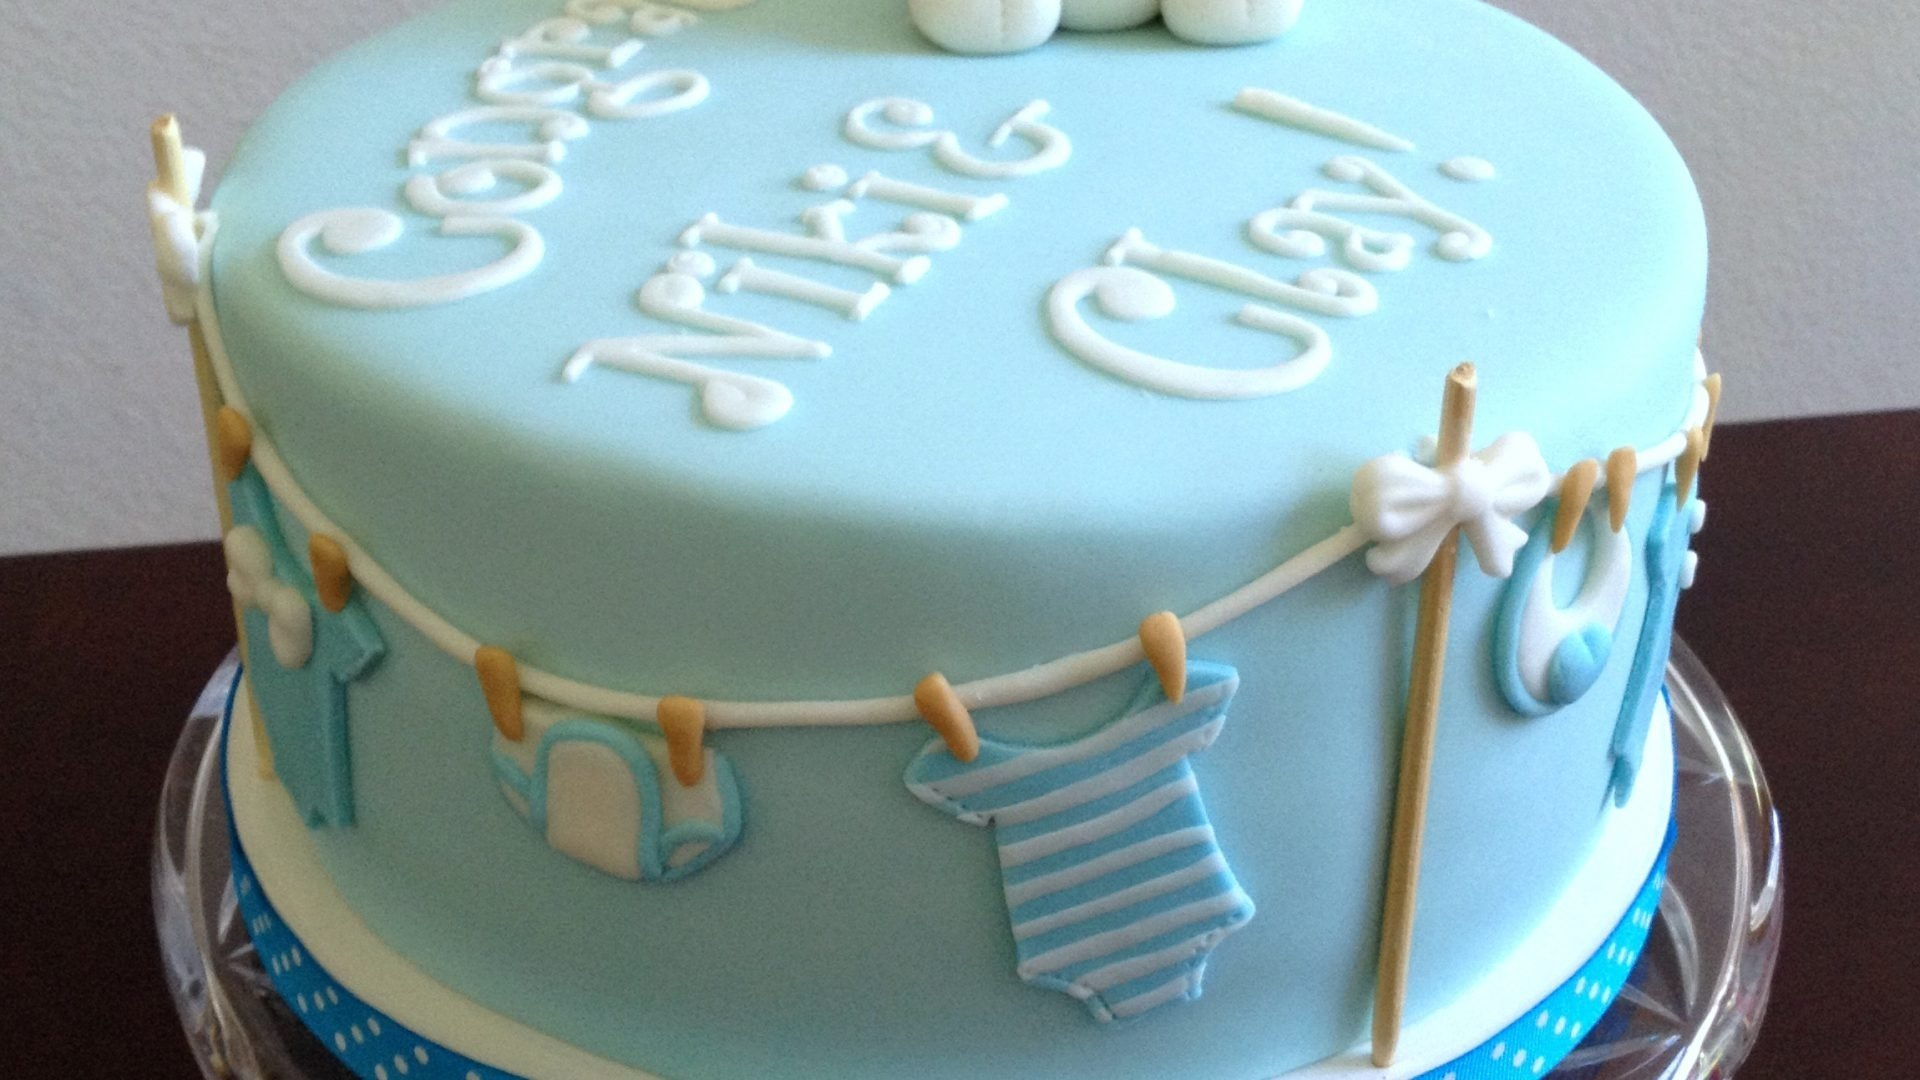 10 Awesome Baby Boy Shower Cake Ideas 100 4721 unbelievableaby shower cake ideasoy sports for twin and